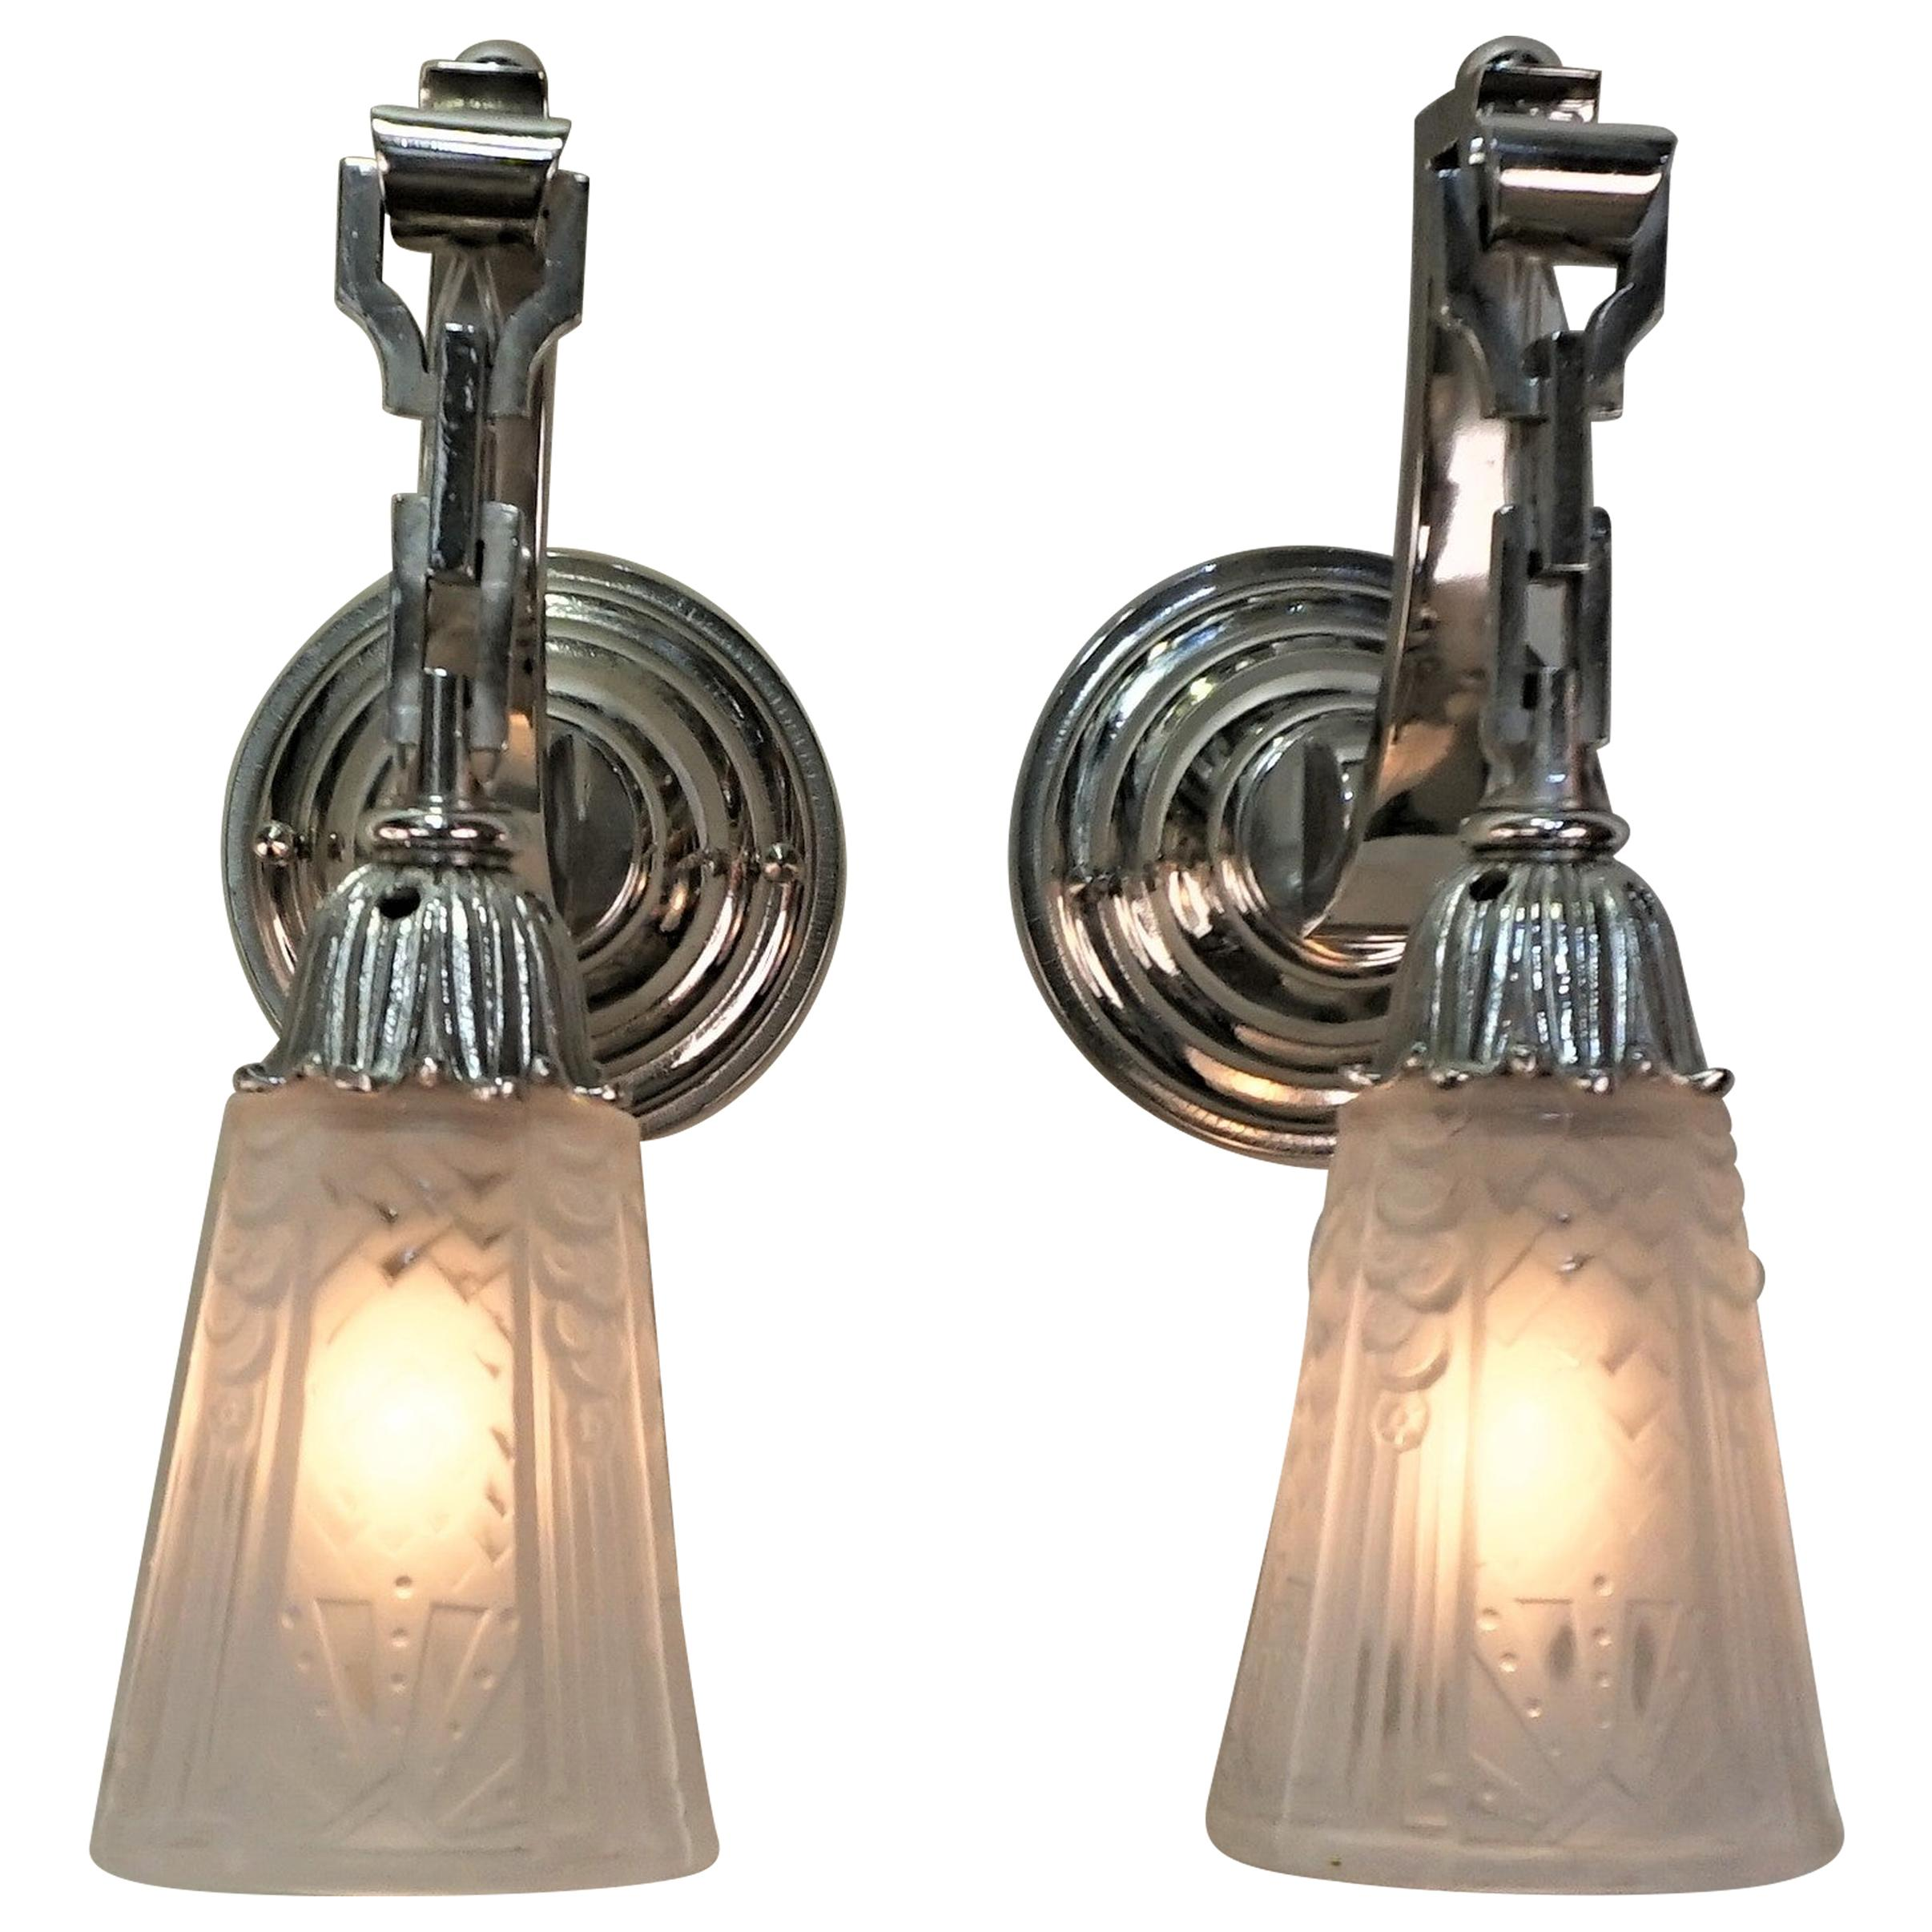 Pair of French Art Deco Wall Sconces by Muller Freres